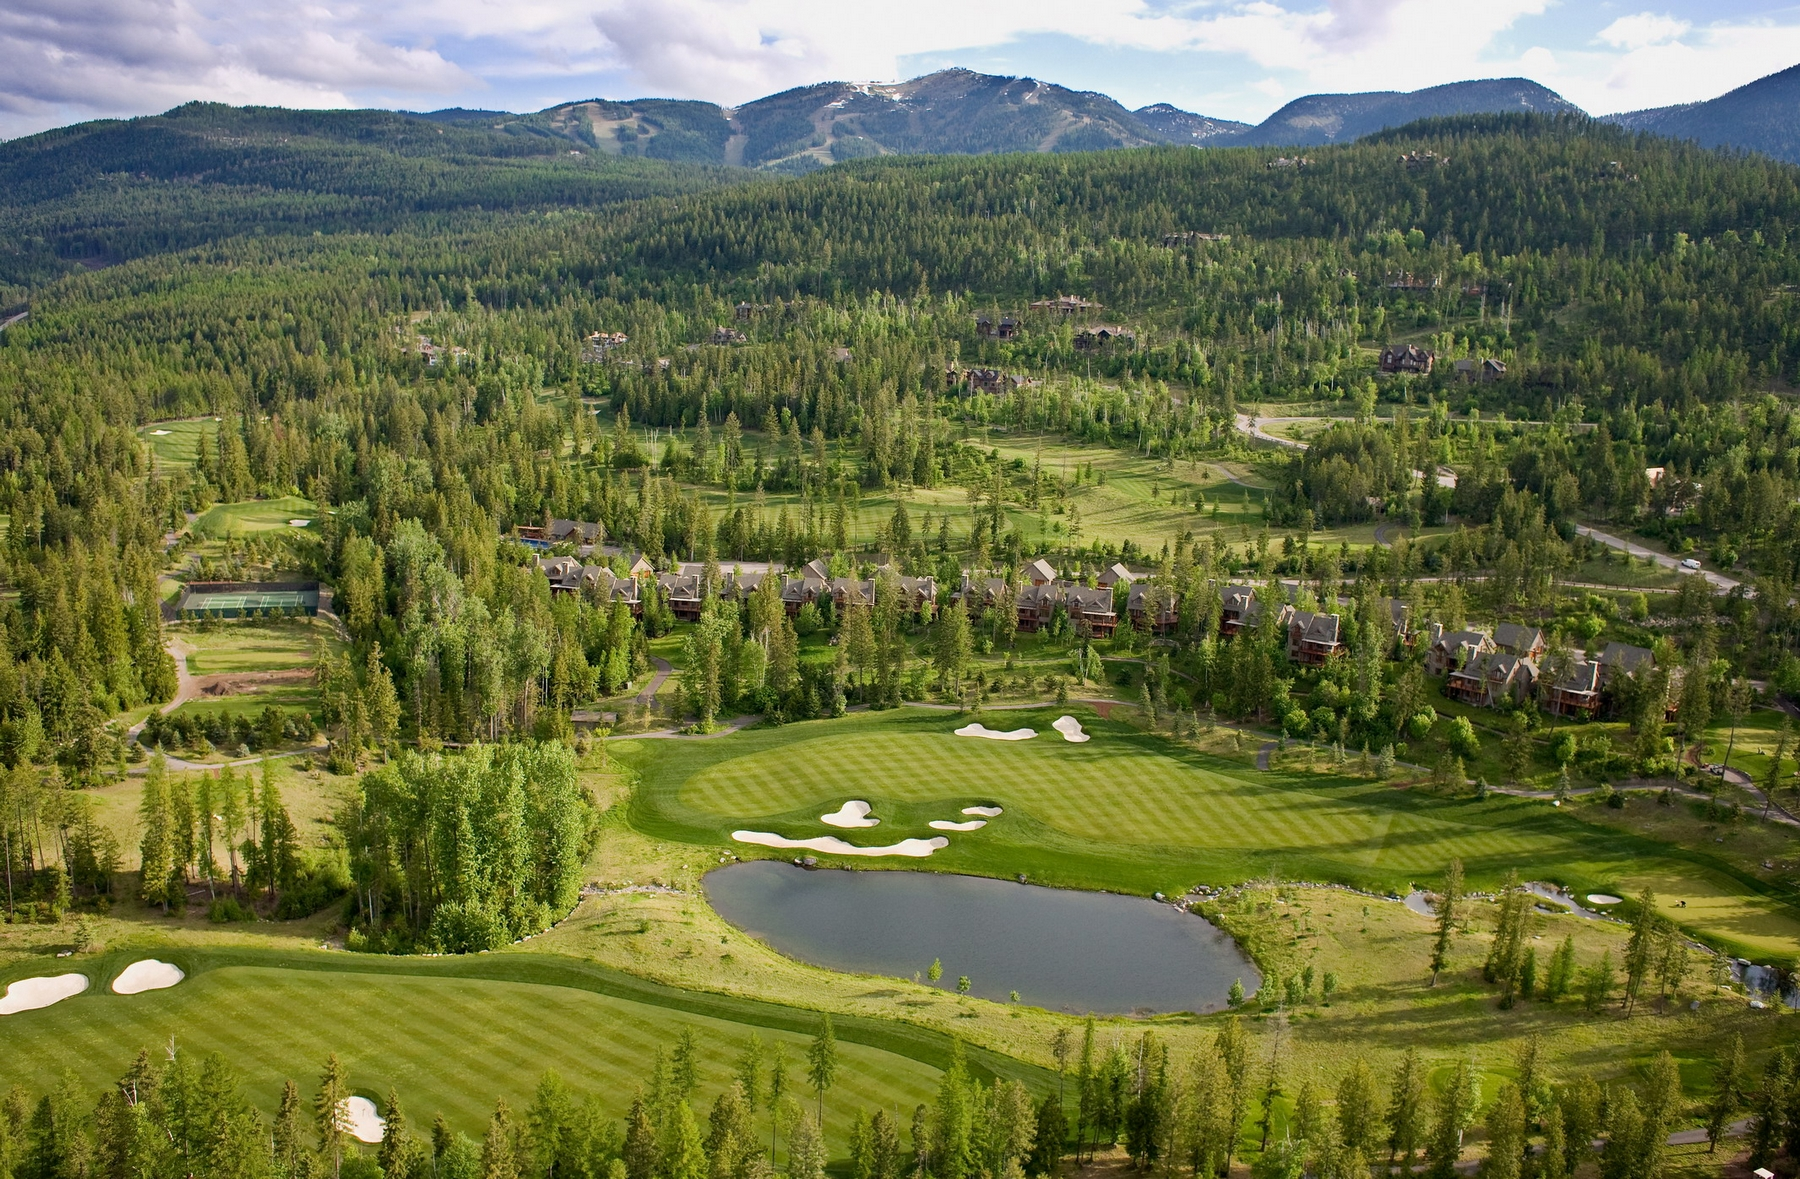 Land for Sale at 235 Arrowhead Cir , Whitefish, MT 59937 235 Arrowhead Dr Whitefish, Montana 59937 United States